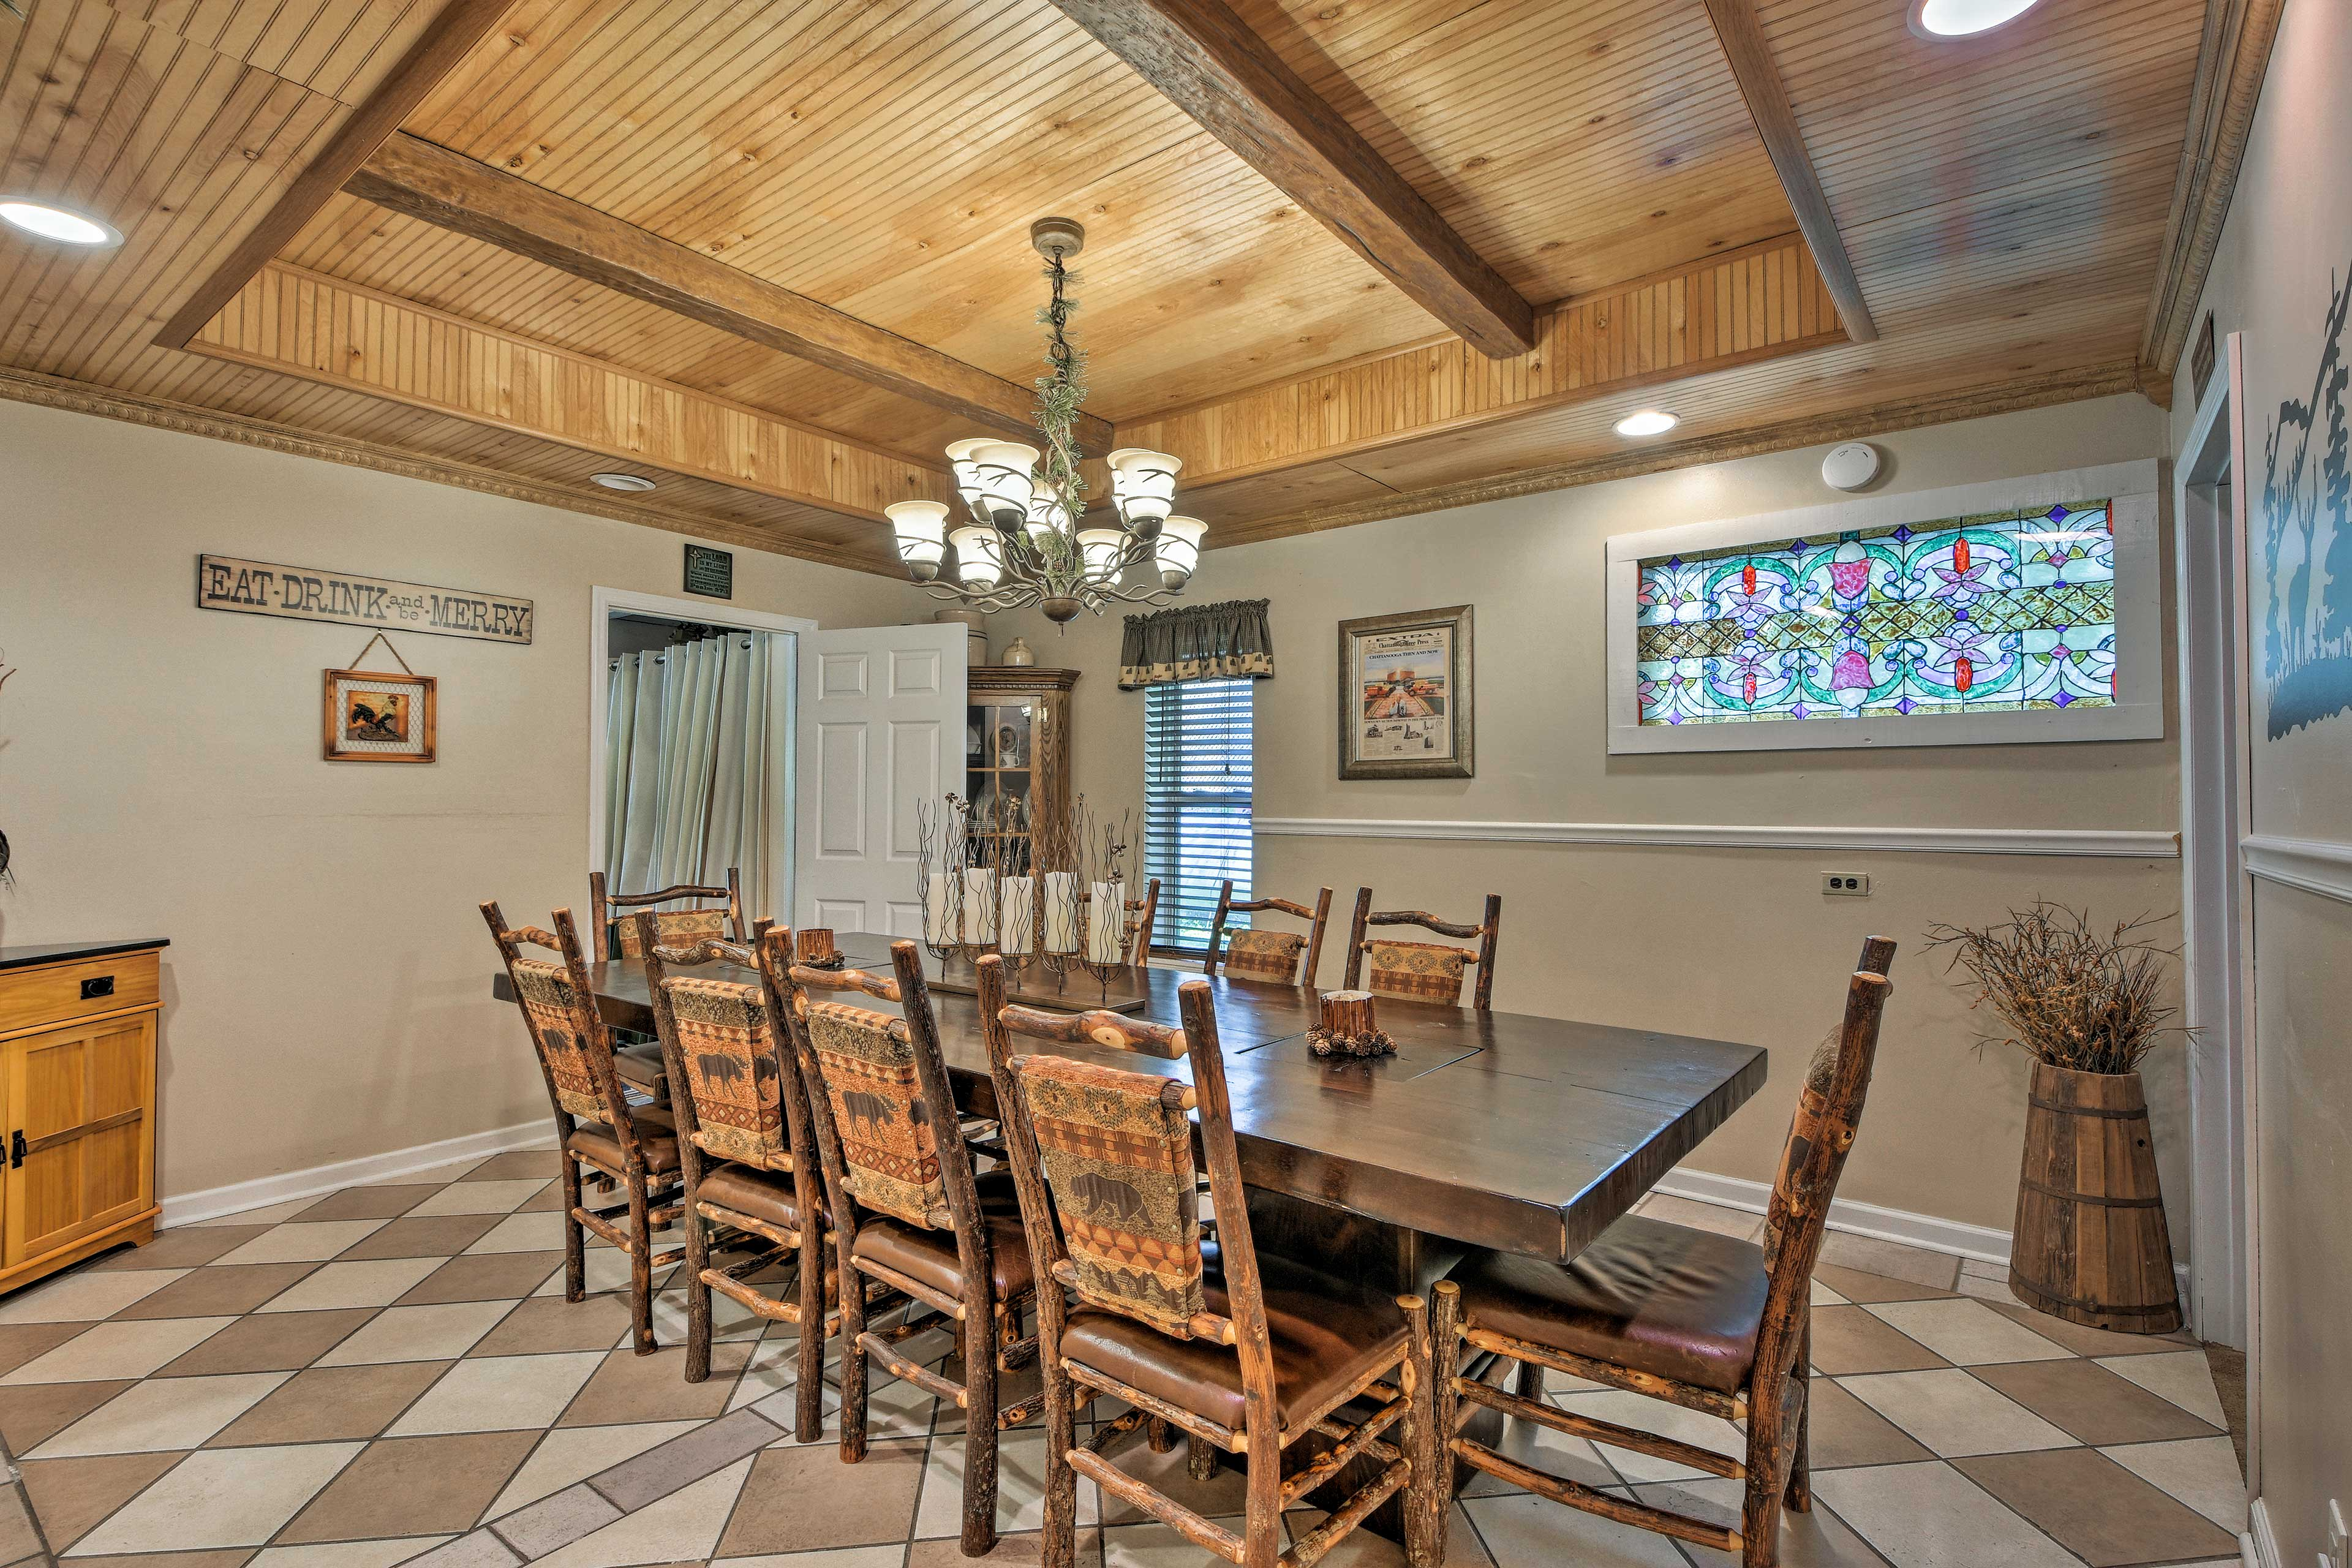 This large 10-person dining table easily hosts feasts!